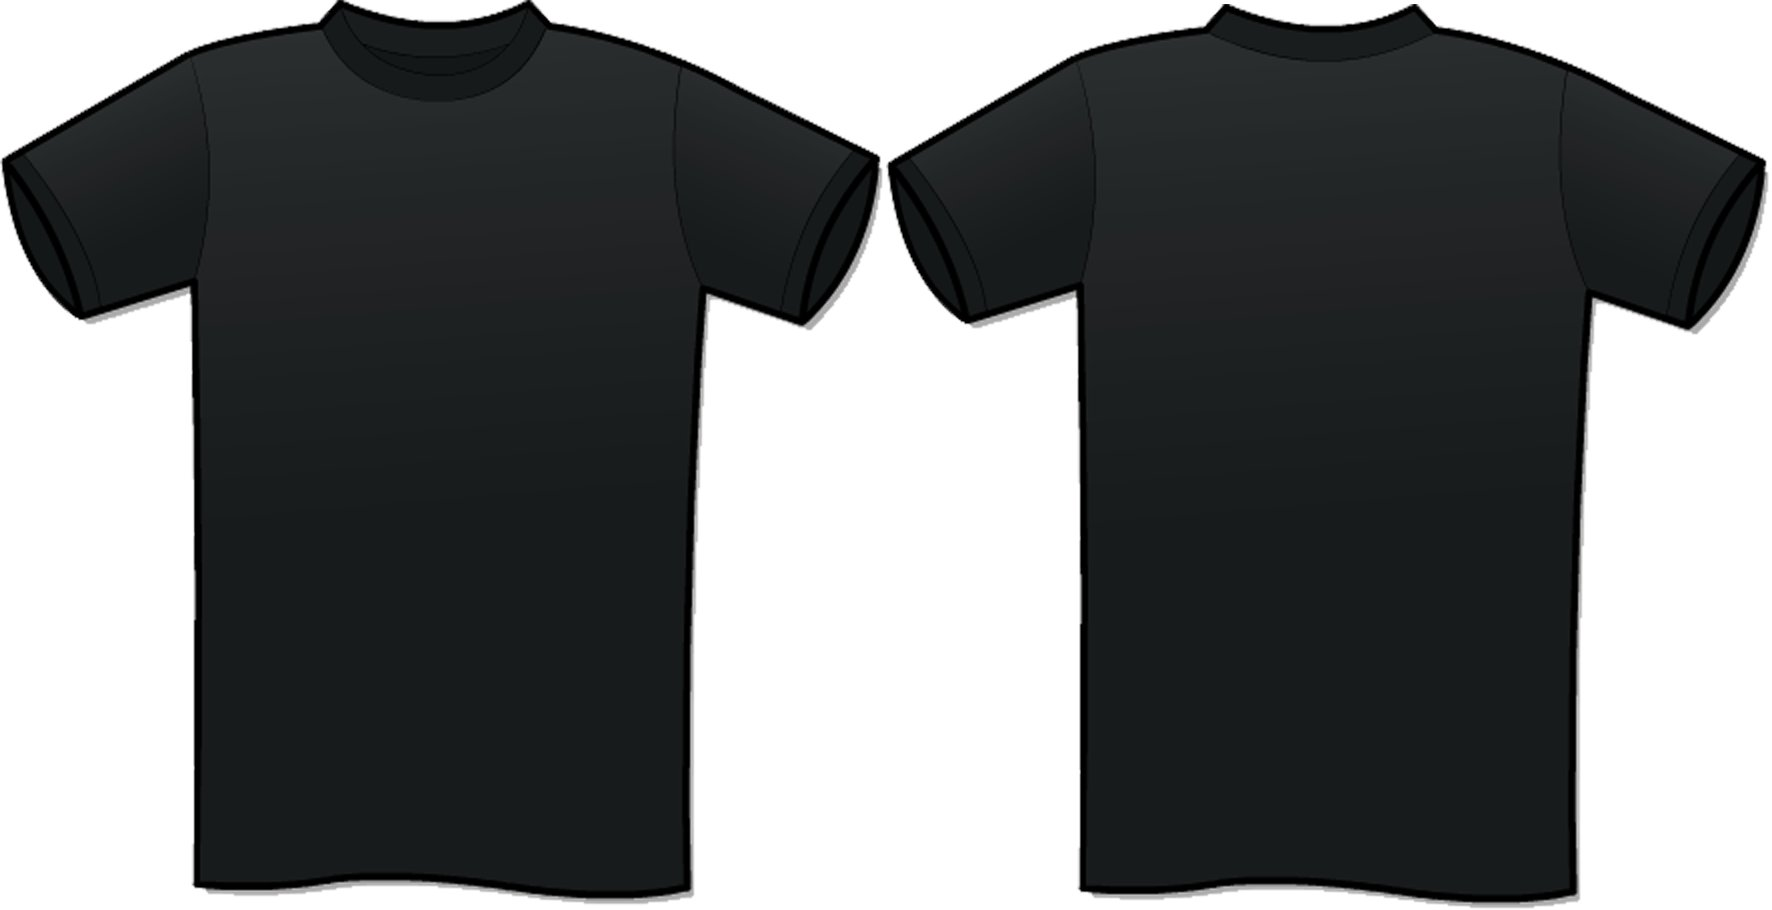 Black t shirt model template - Black T Shirt Template For Photoshop Template Psd Images White T Shirt Download